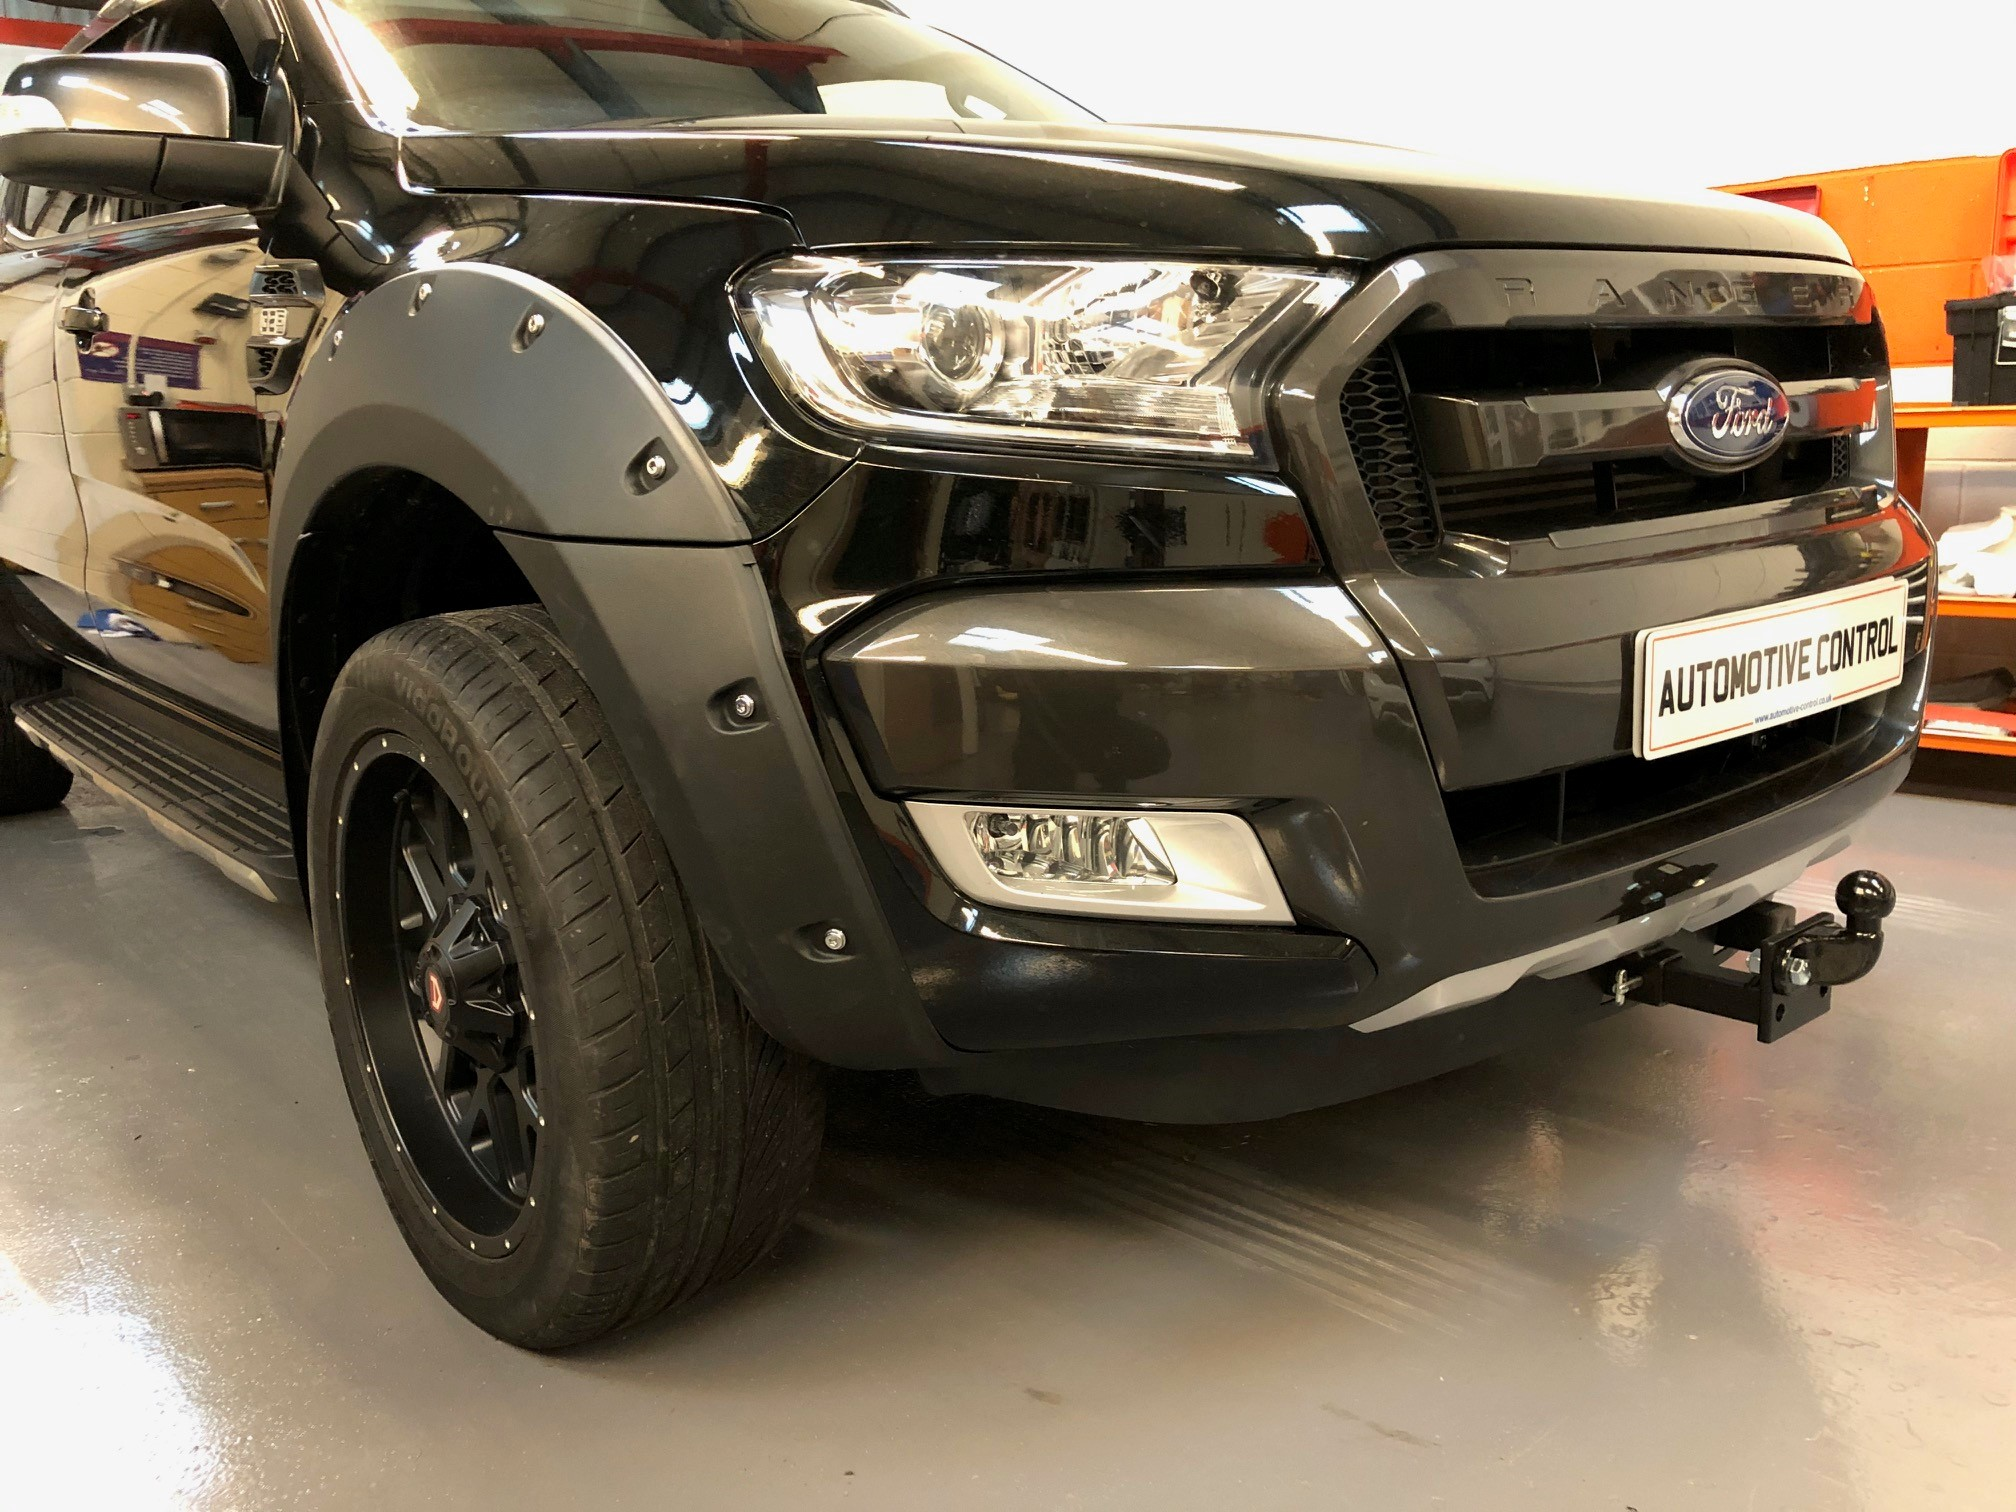 Ford Ranger Wildtrak Front Tow Bar Automotive Control Bristol